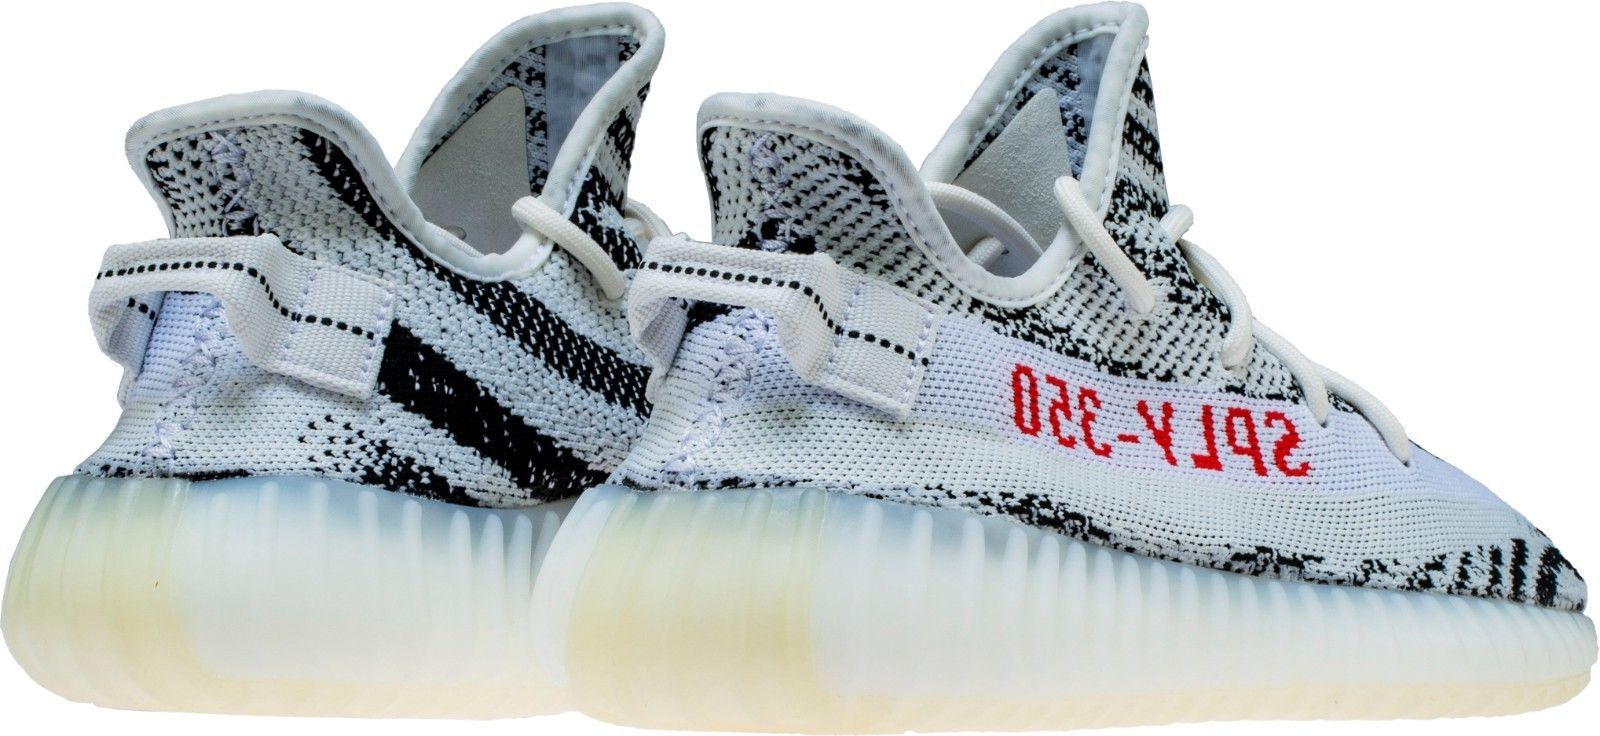 c07704fa80c Details about adidas Yeezy Boost 350 V2 Zebra Shoes CP9654    Size ...